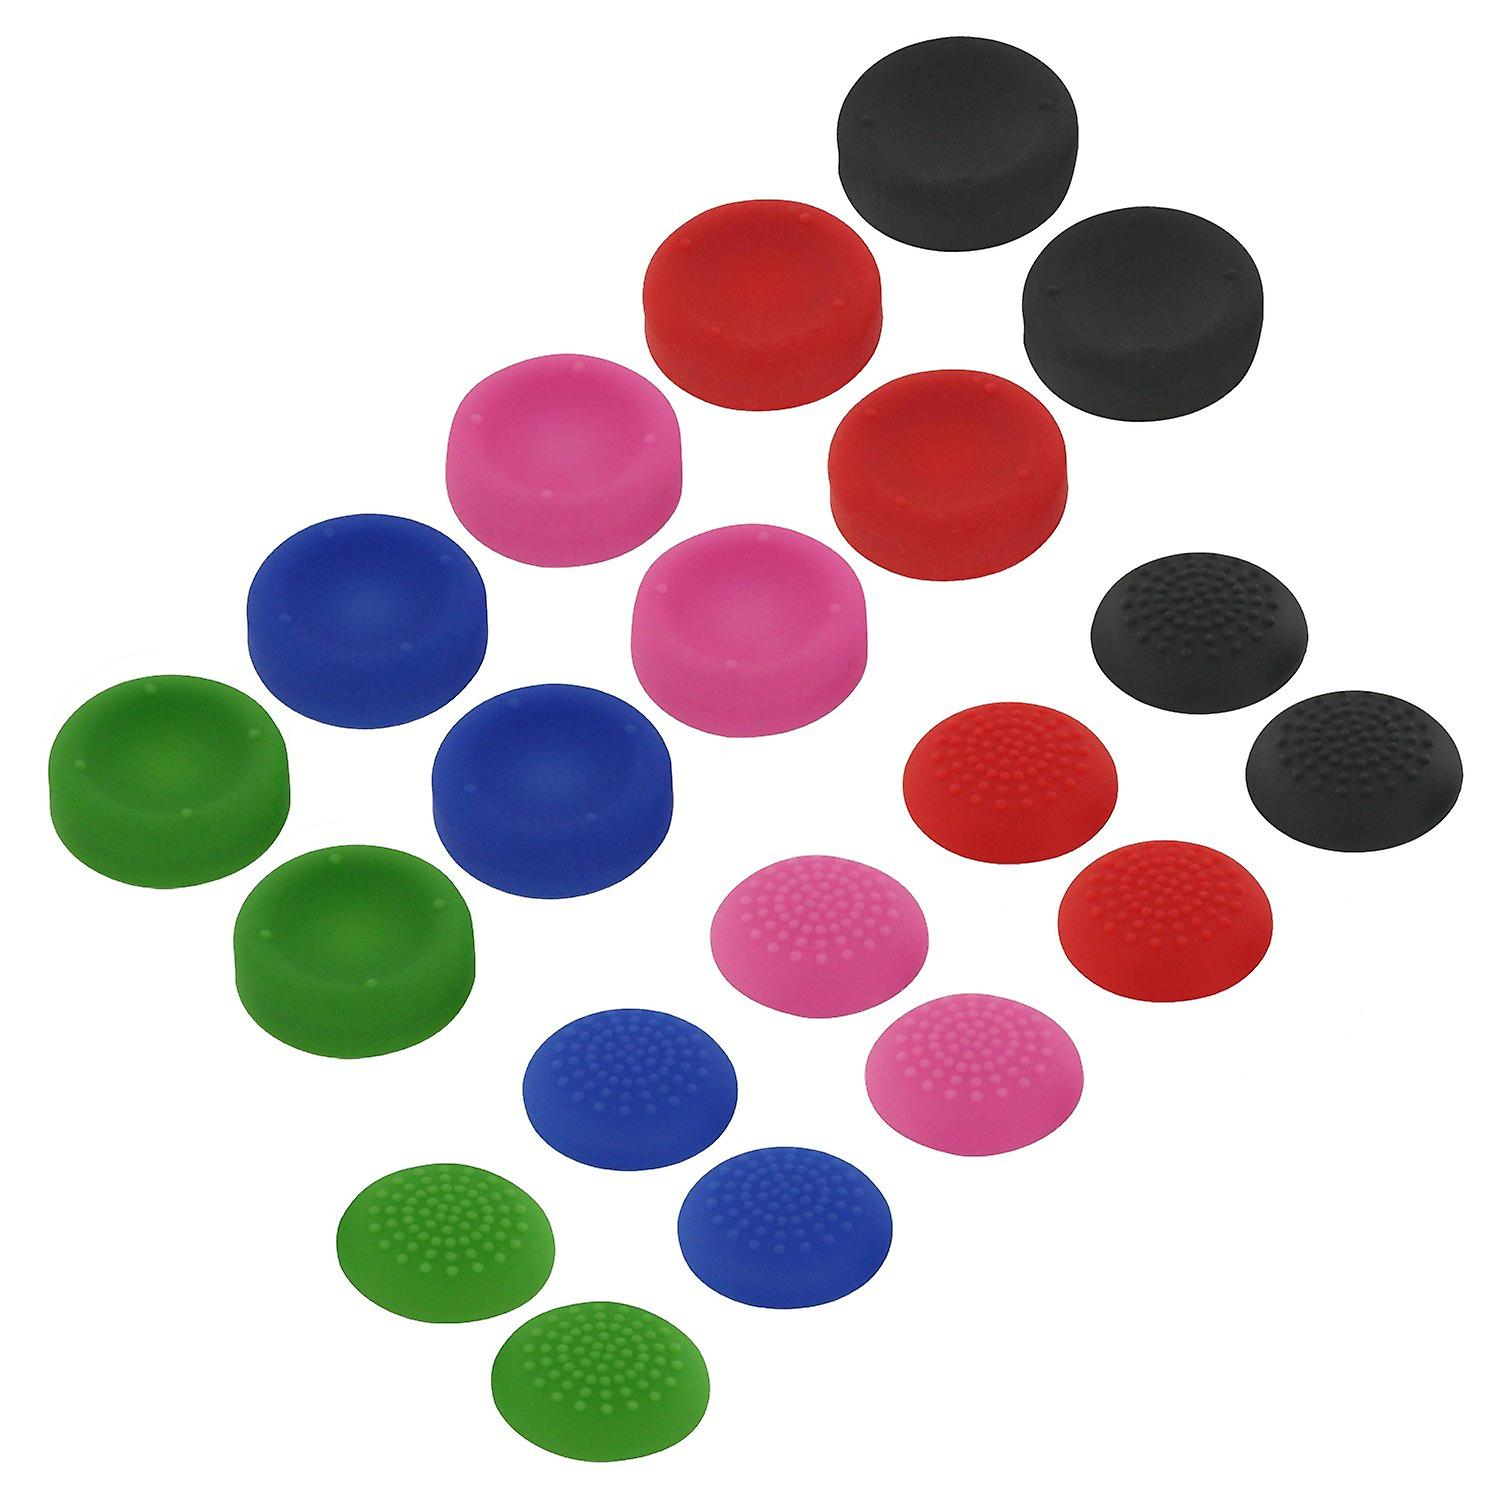 Concave & convex soft silicone thumb grips for sony ps4 analog sticks - 20 pack multi colour